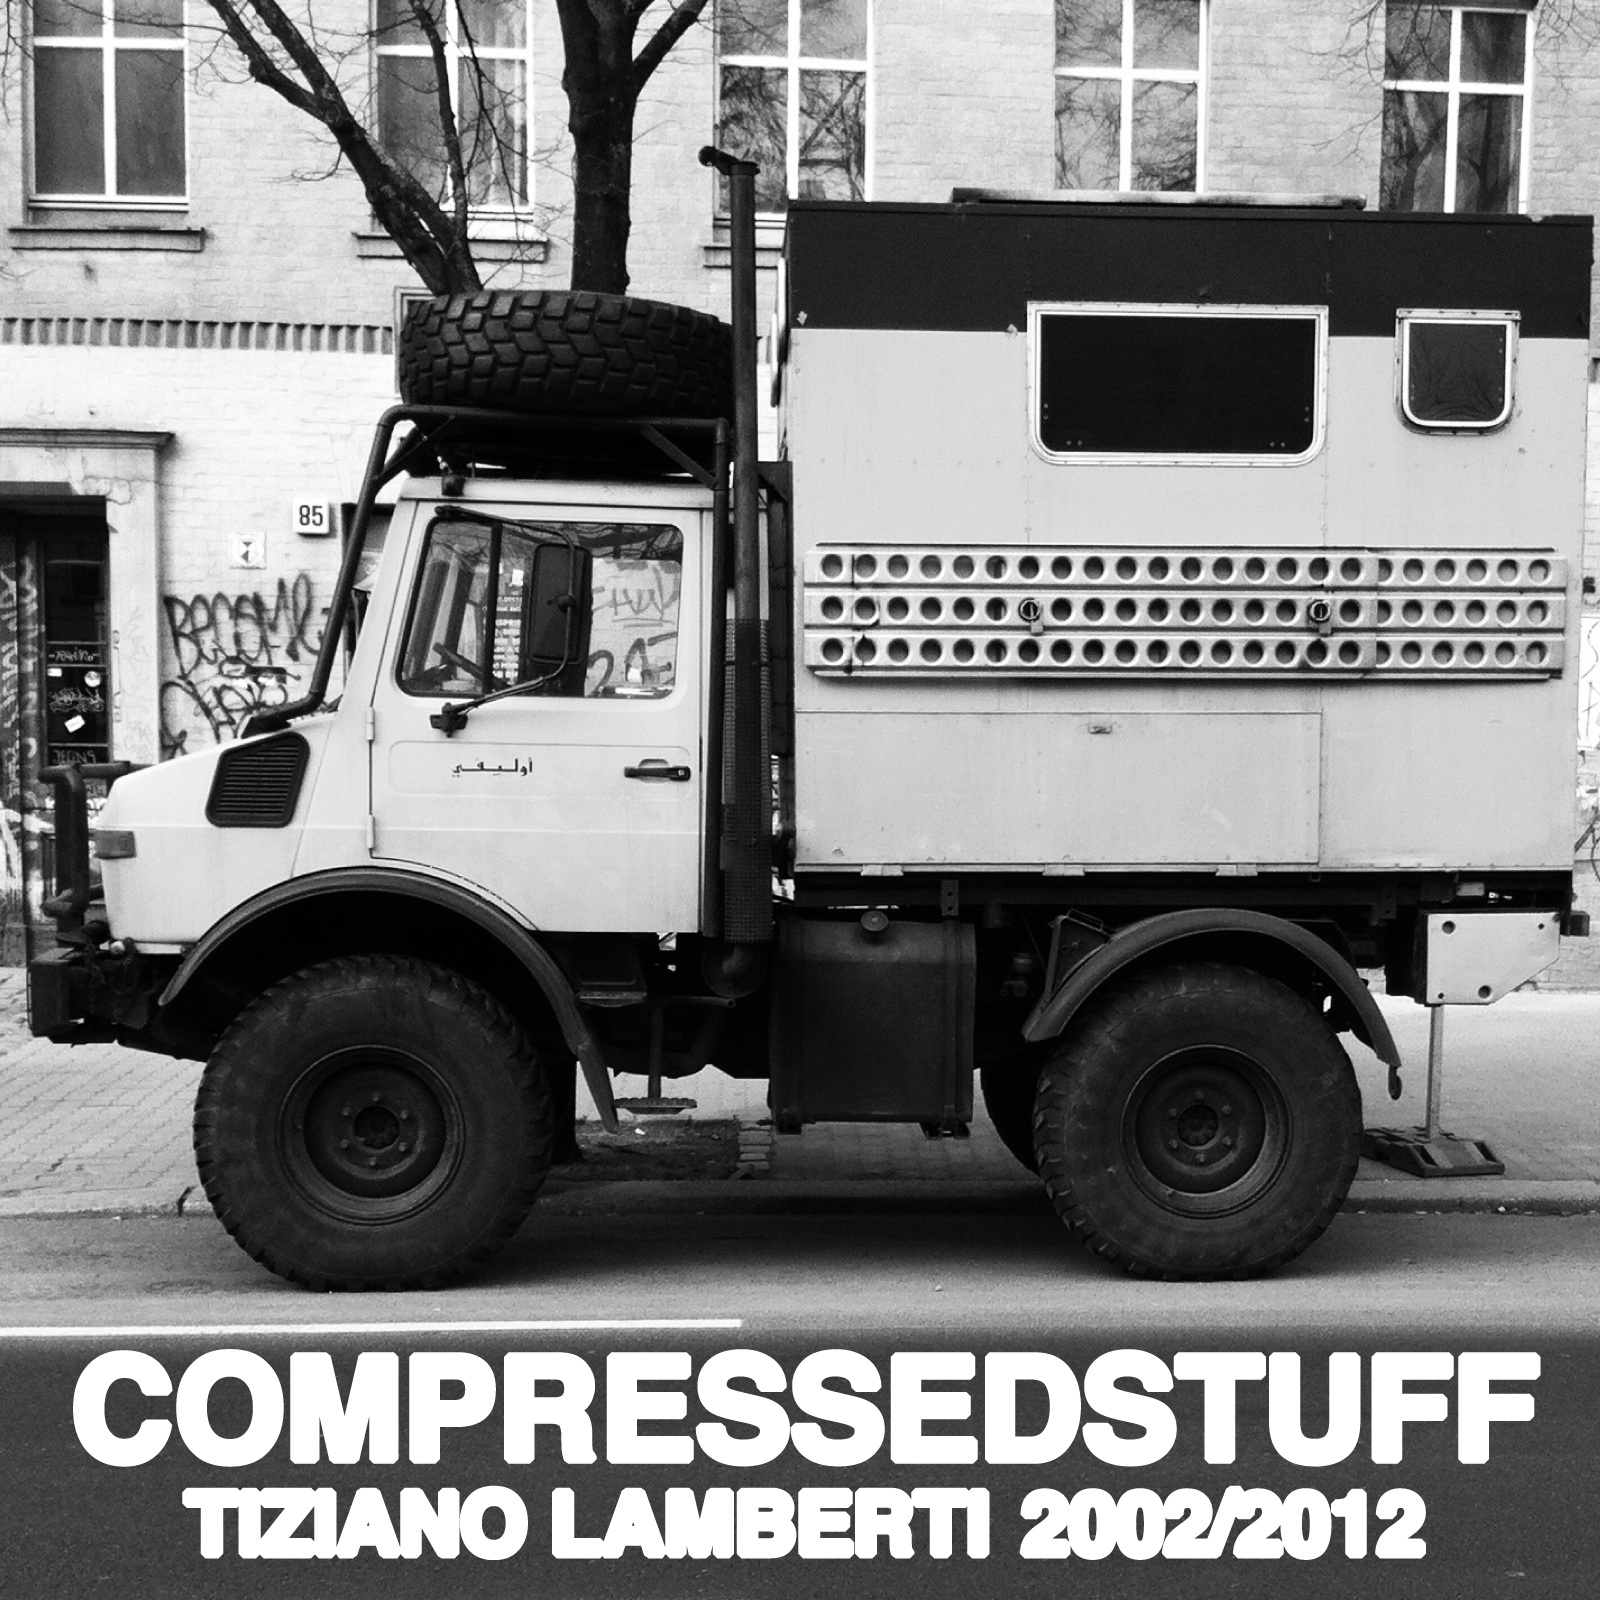 Tiziano Lamberti – COMPRESSED STUFF 2002/2012